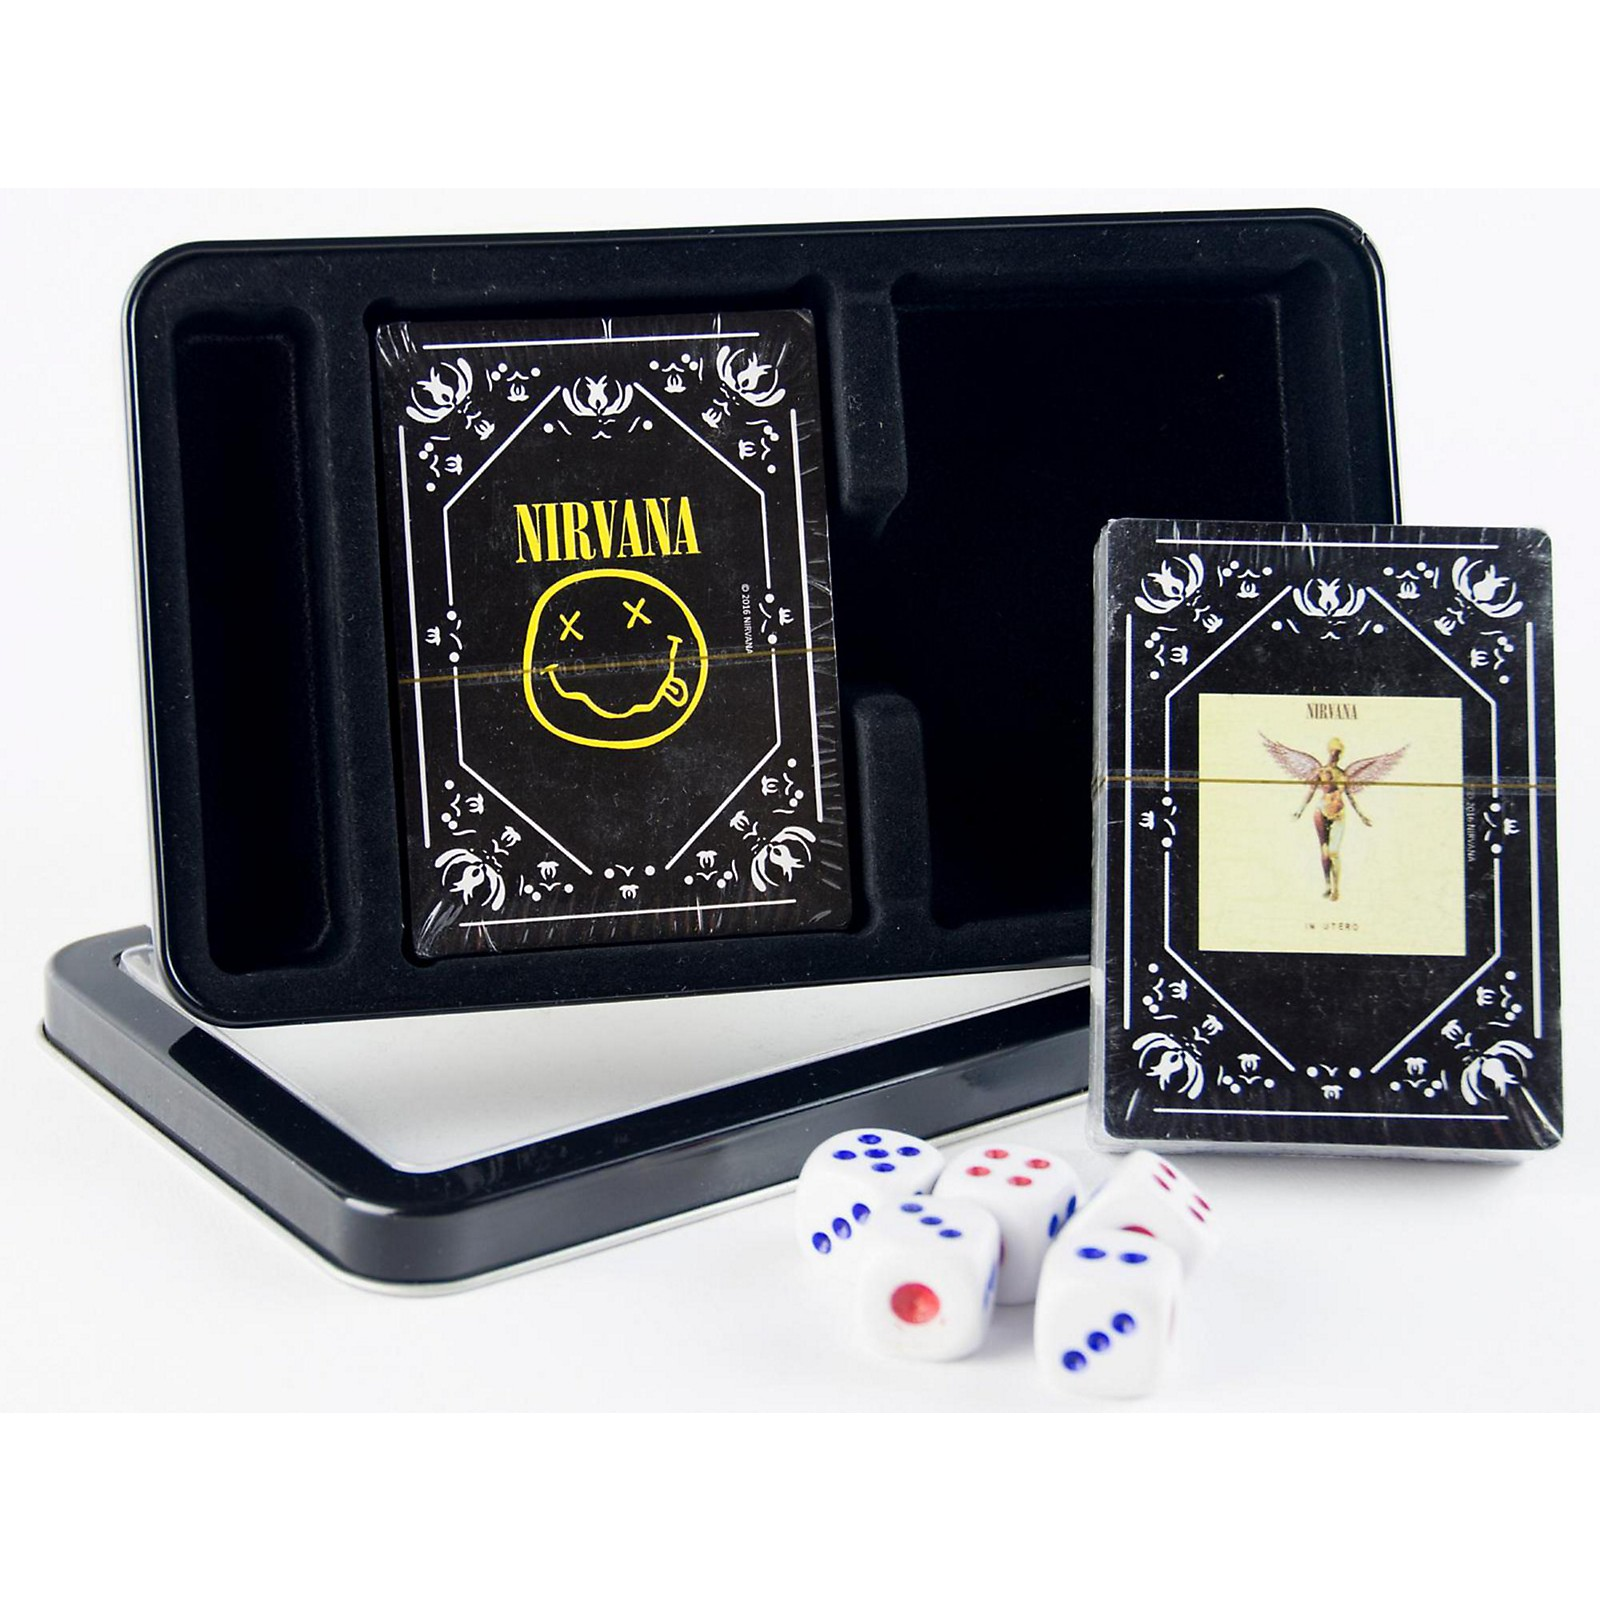 Iconic Concepts Nirvana Double Deck Playing Card Set with Dice - In Utero Cover and Nirvana Smiley in Tin Box